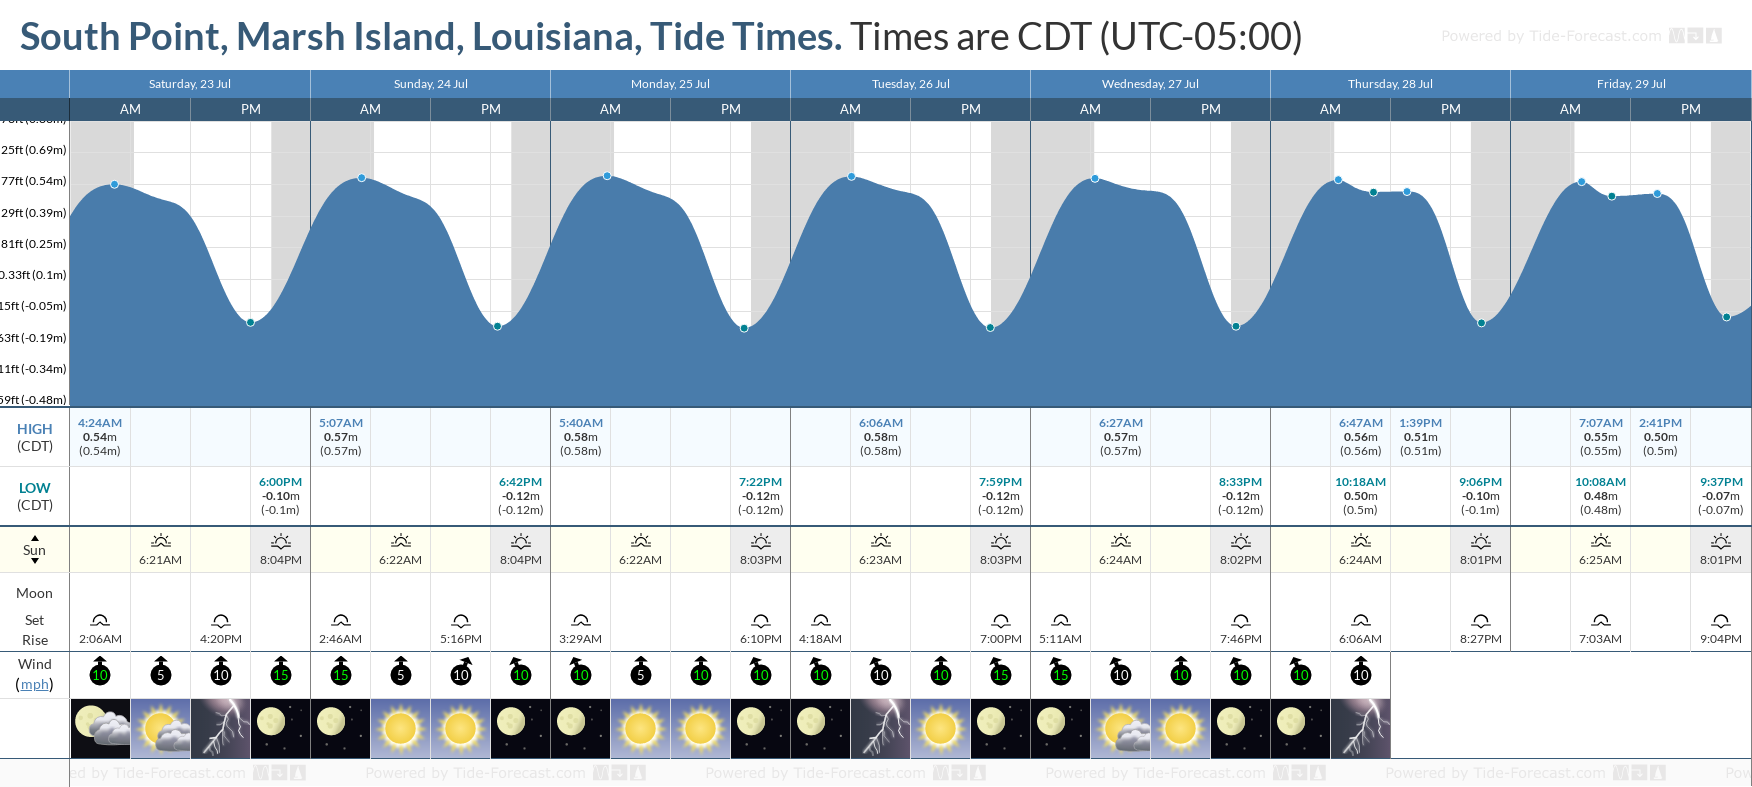 South Point, Marsh Island, Louisiana Tide Chart including high and low tide tide times for the next 7 days